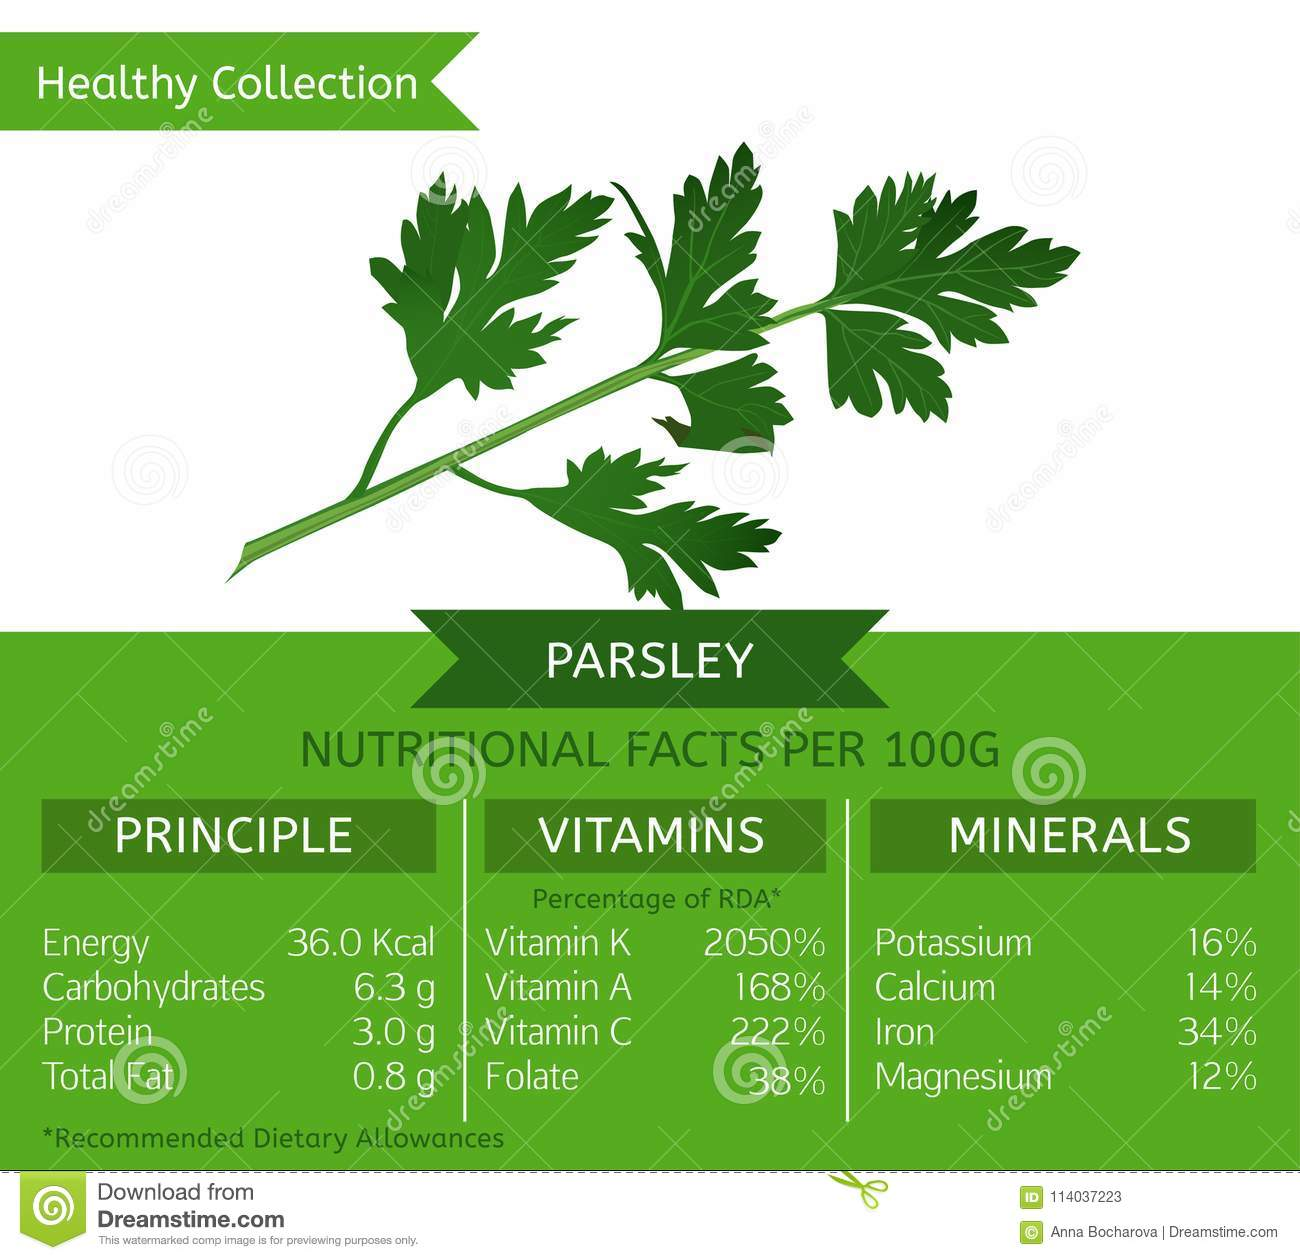 b15722781a7 The garden parsley health benefits. Vector illustration with useful  nutritional facts. Essential vitamins and minerals in healthy food.